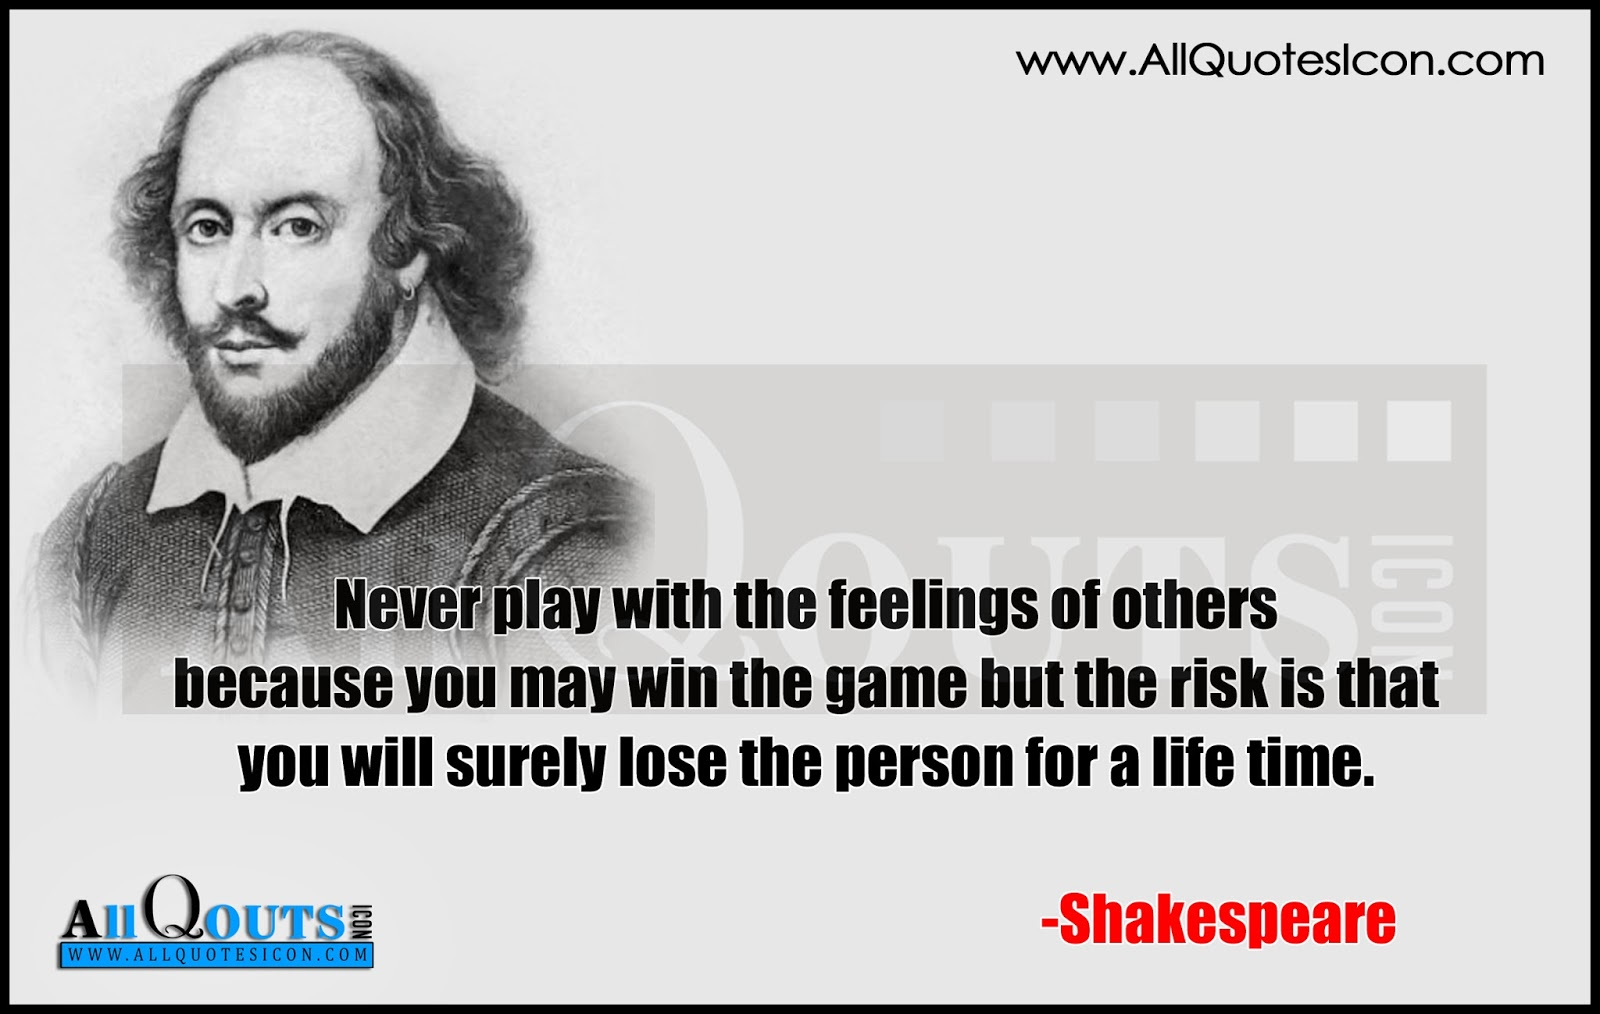 William Shakespeare Quotes About Friendship William Shakespeare Motivational Quotes In English  Www